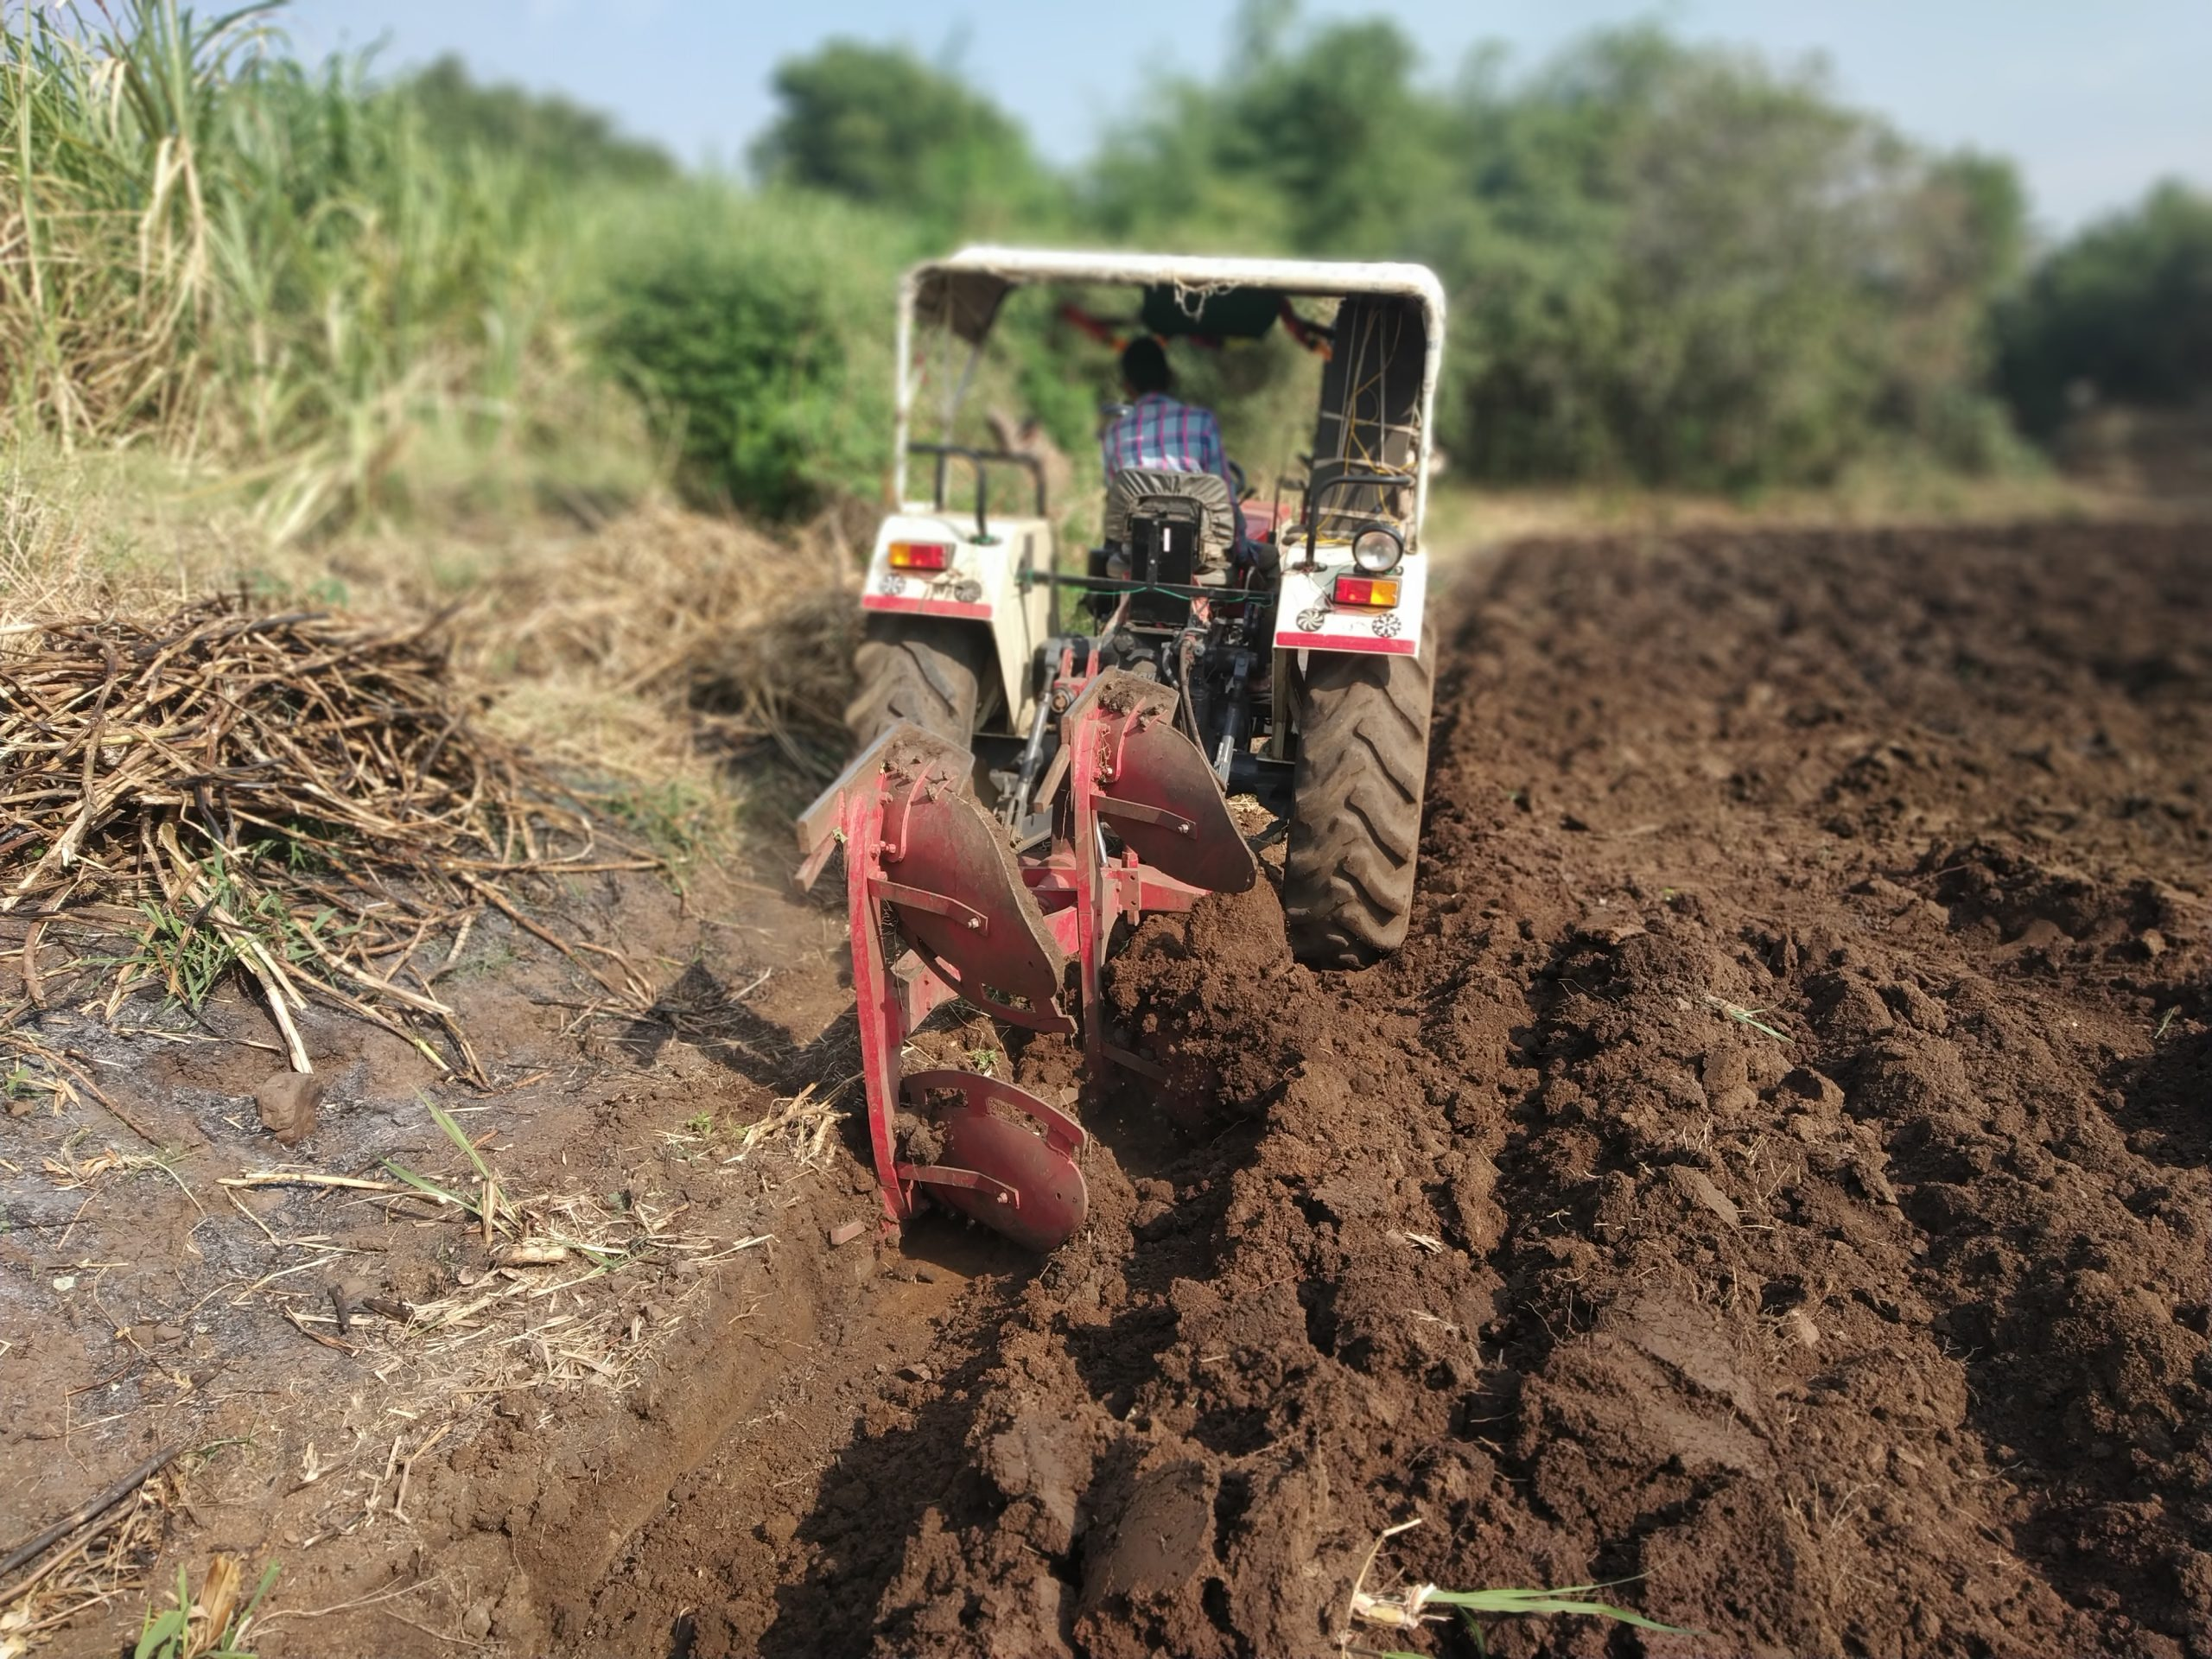 A tractor ploughing the fields